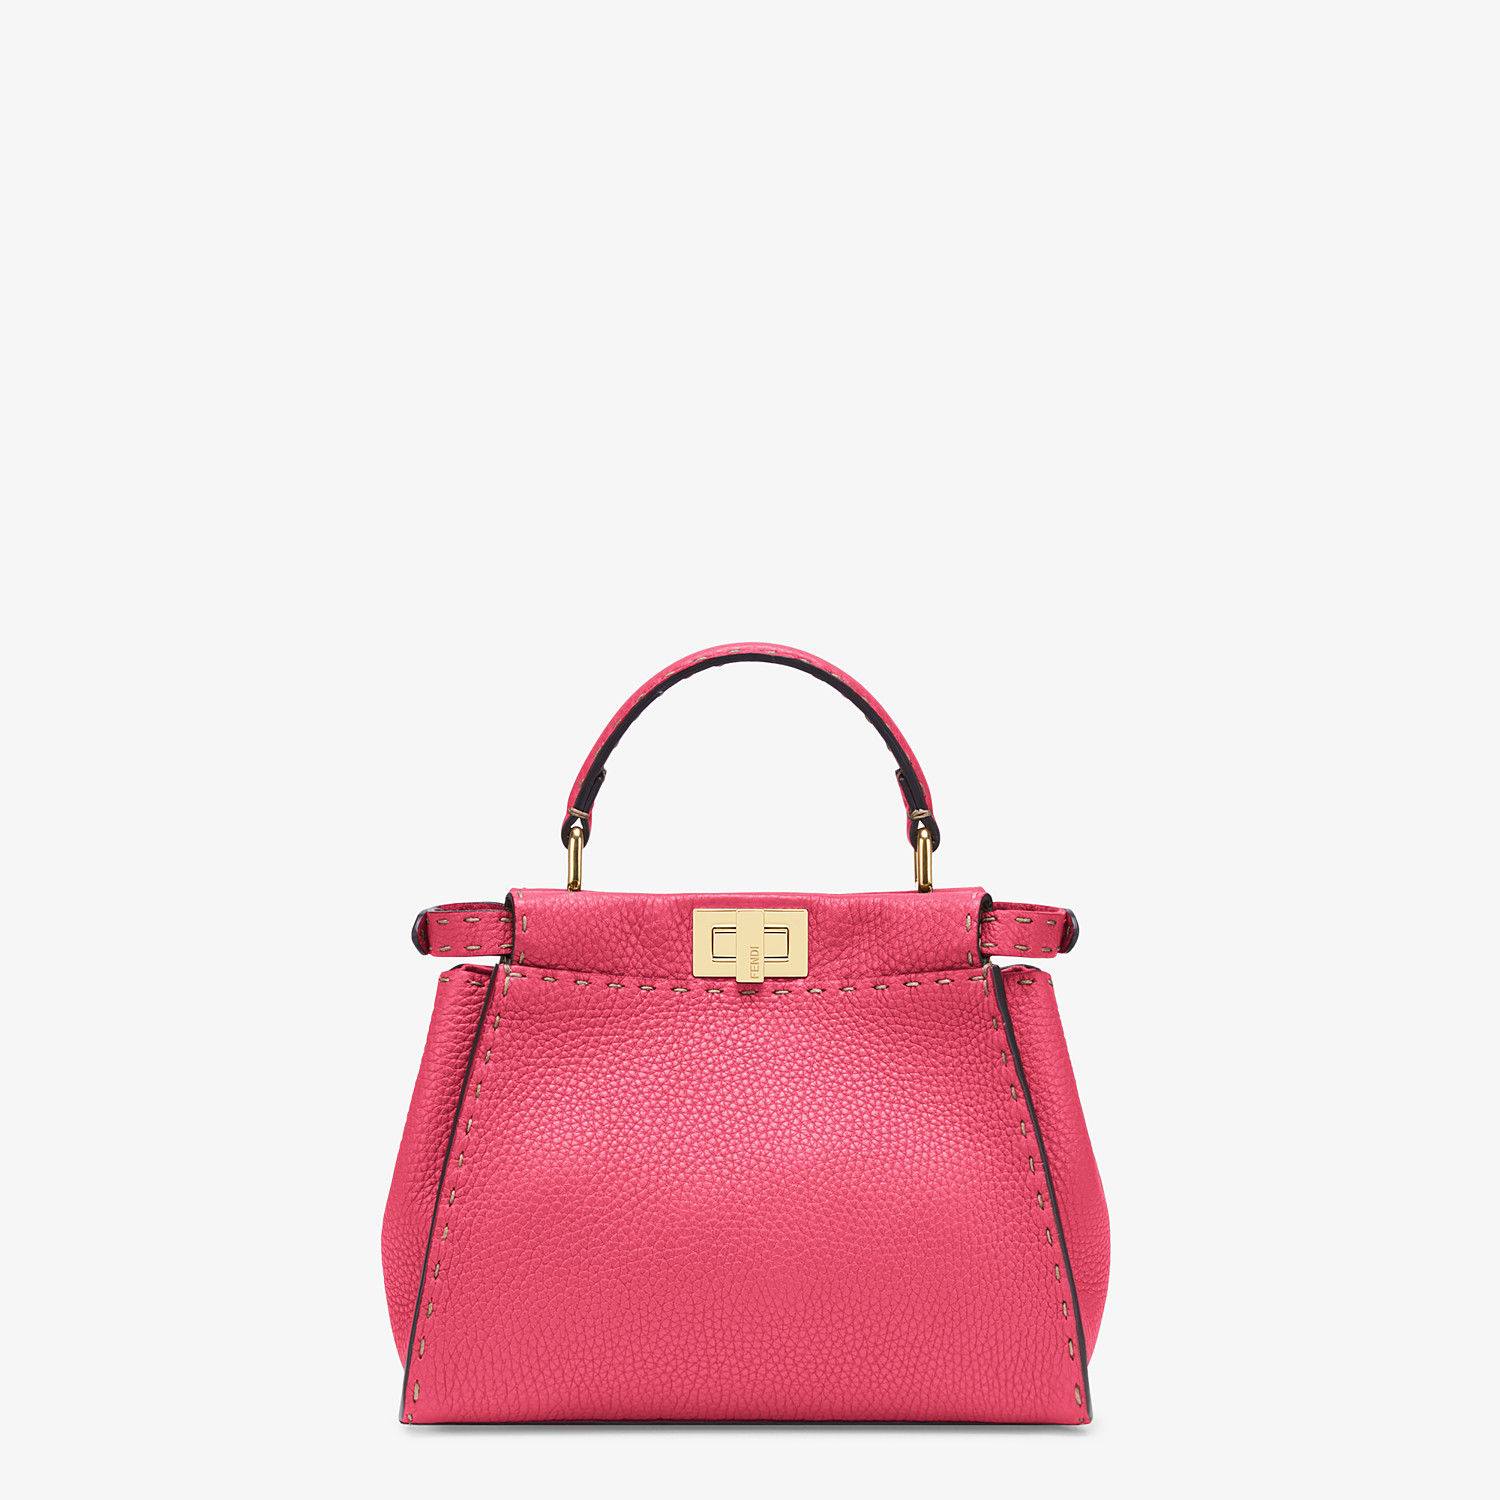 FENDI PEEKABOO ICONIC MINI - Fendi Roma Amor leather bag - view 4 detail